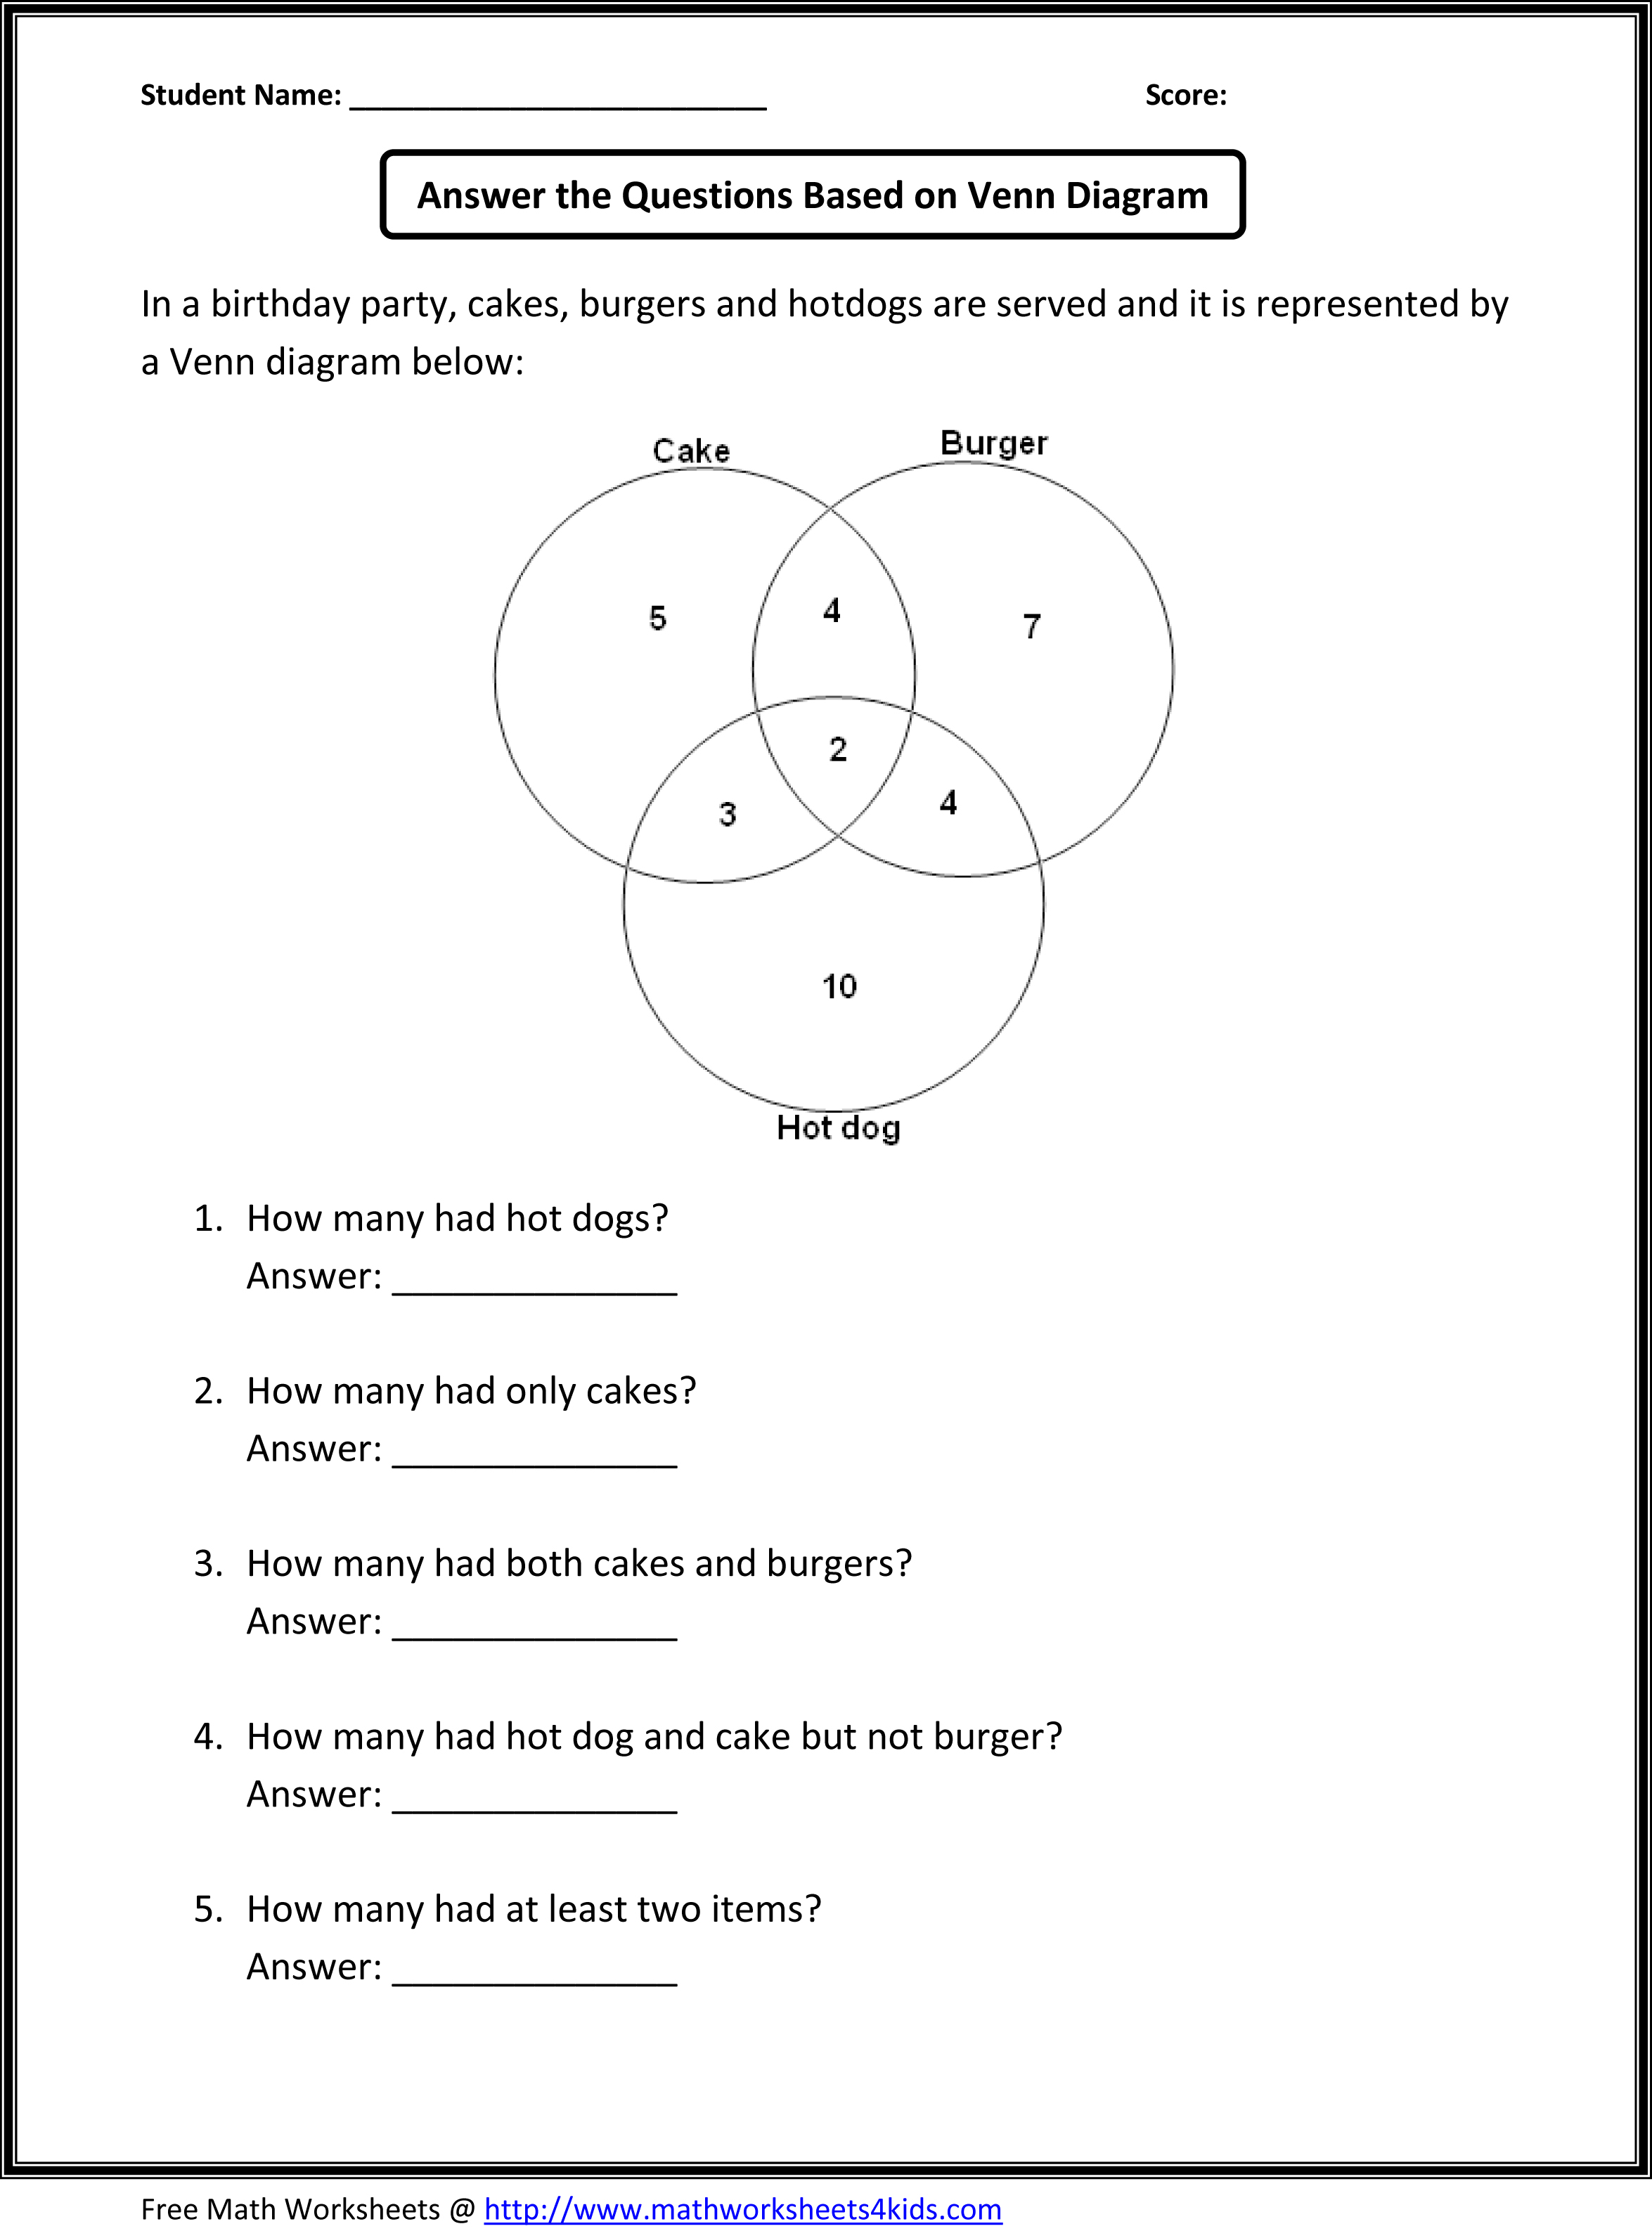 Algrebra Worksheet Greatest Common Factor